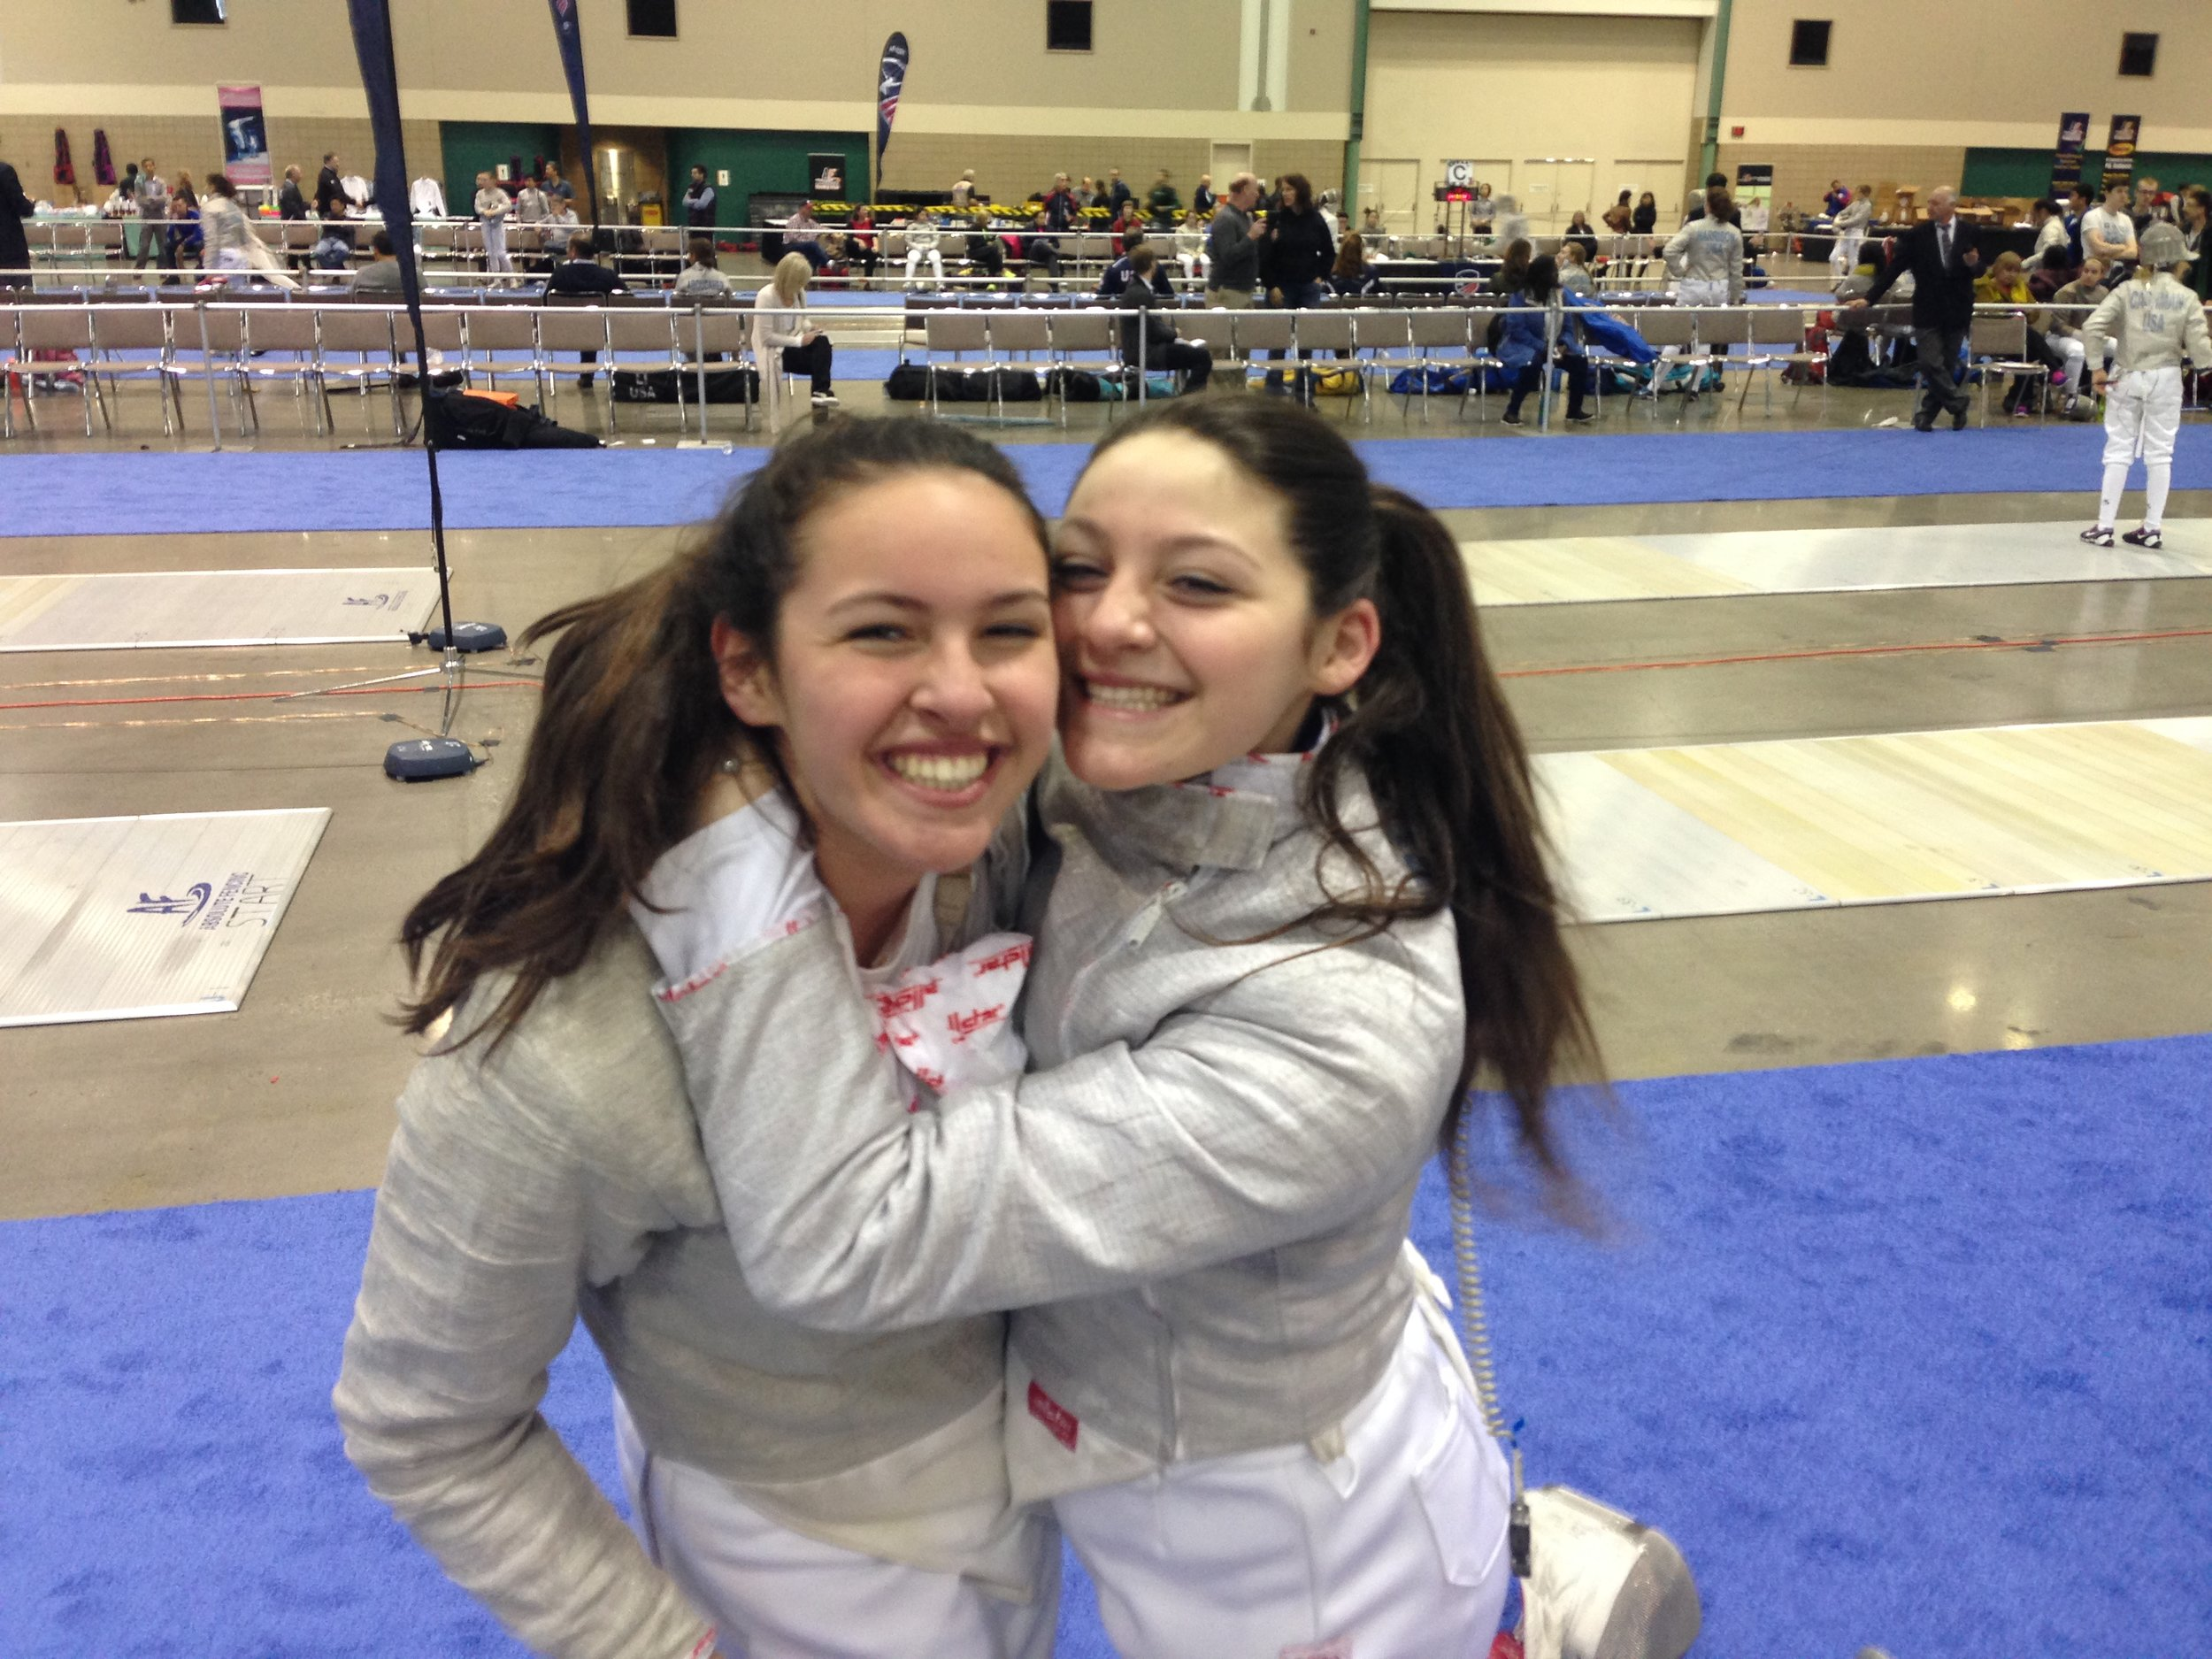 imaginate ink twins win gold and 5th in fencing junior olympics - Congratulations Ryan and Morgan!